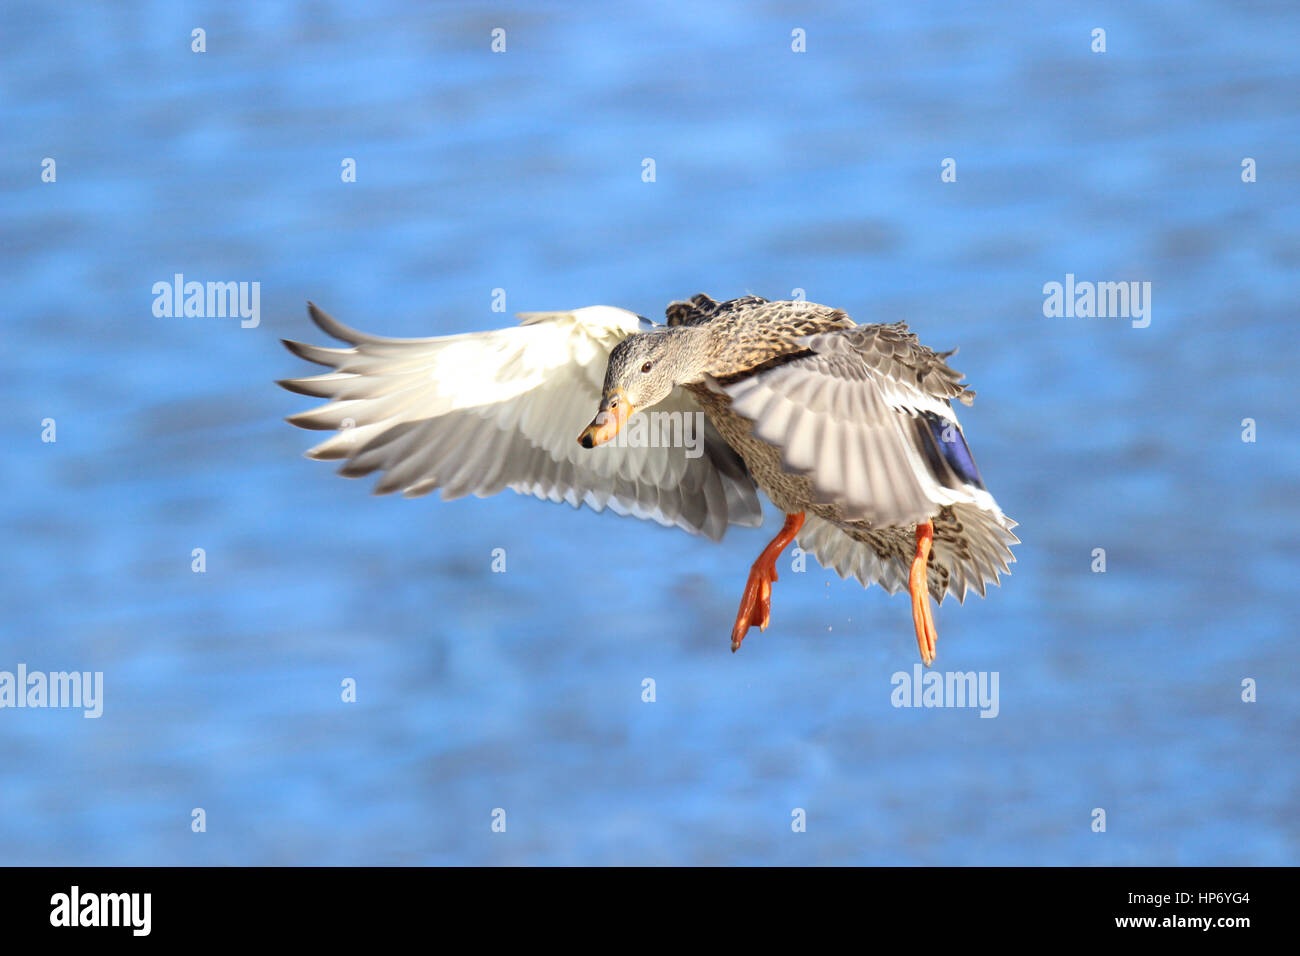 A female mallard duck flying in to land on a pond - Stock Image